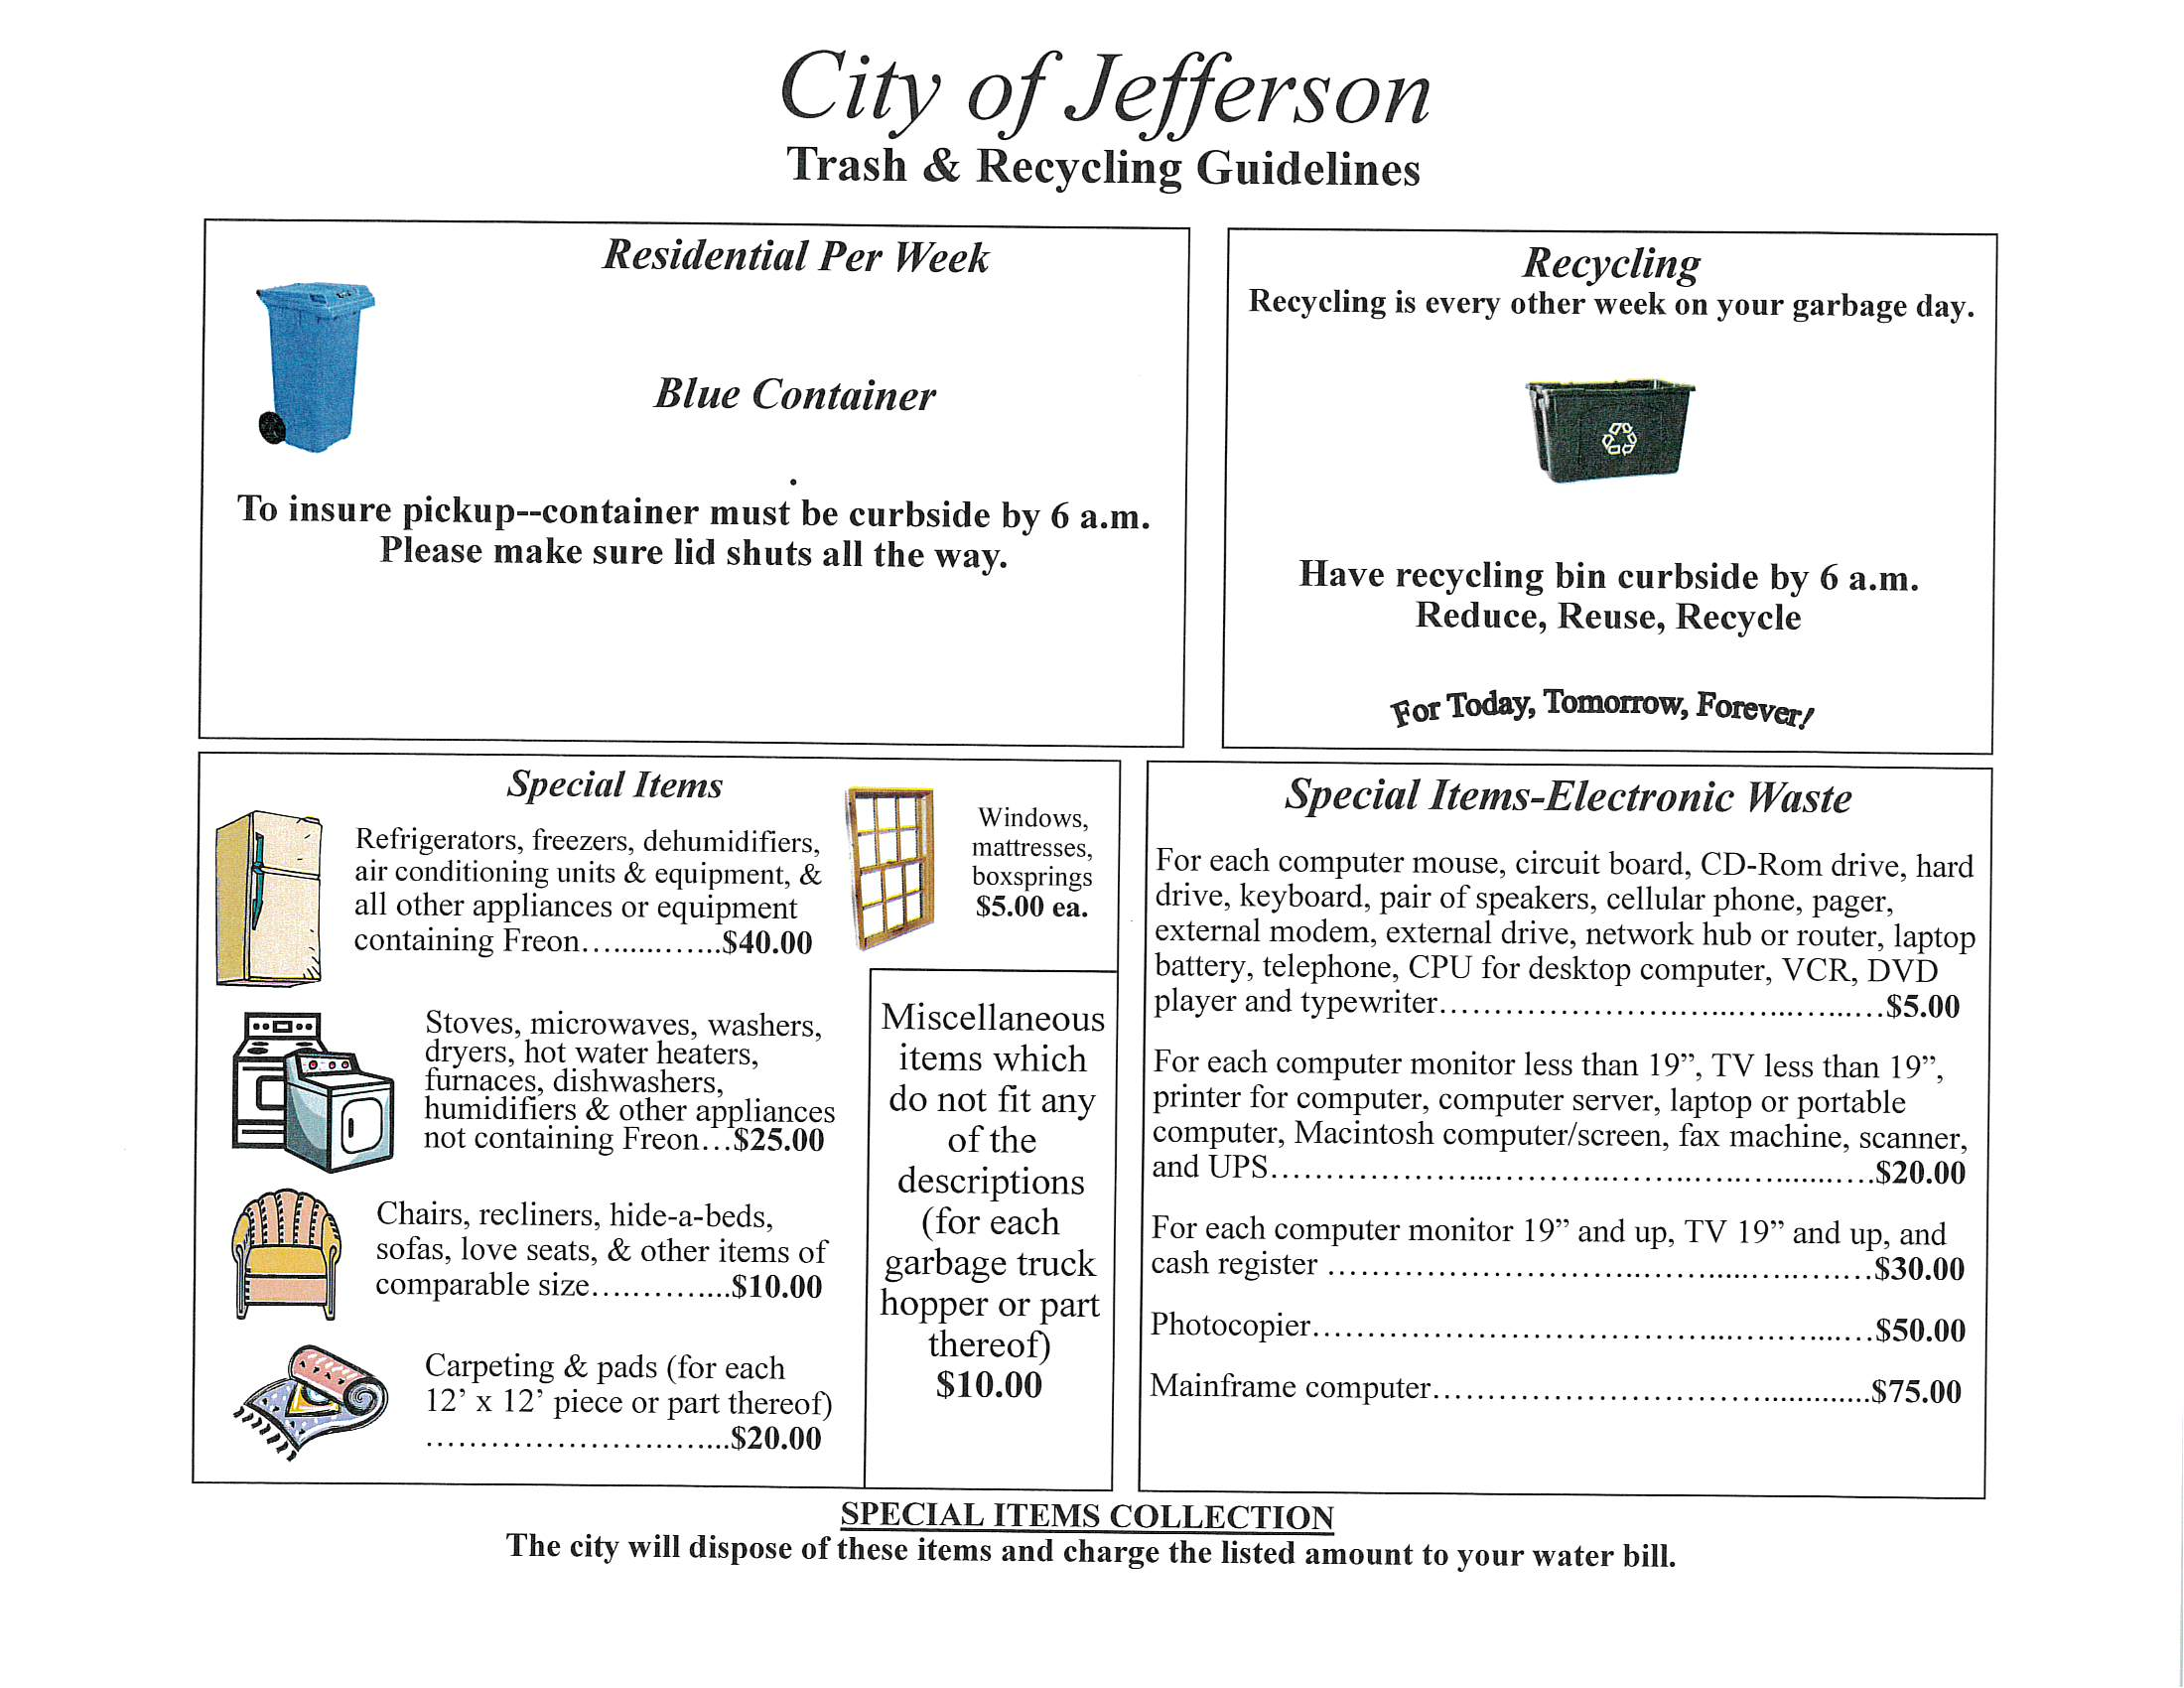 City of Jefferson Trash & Recycling Guidelines